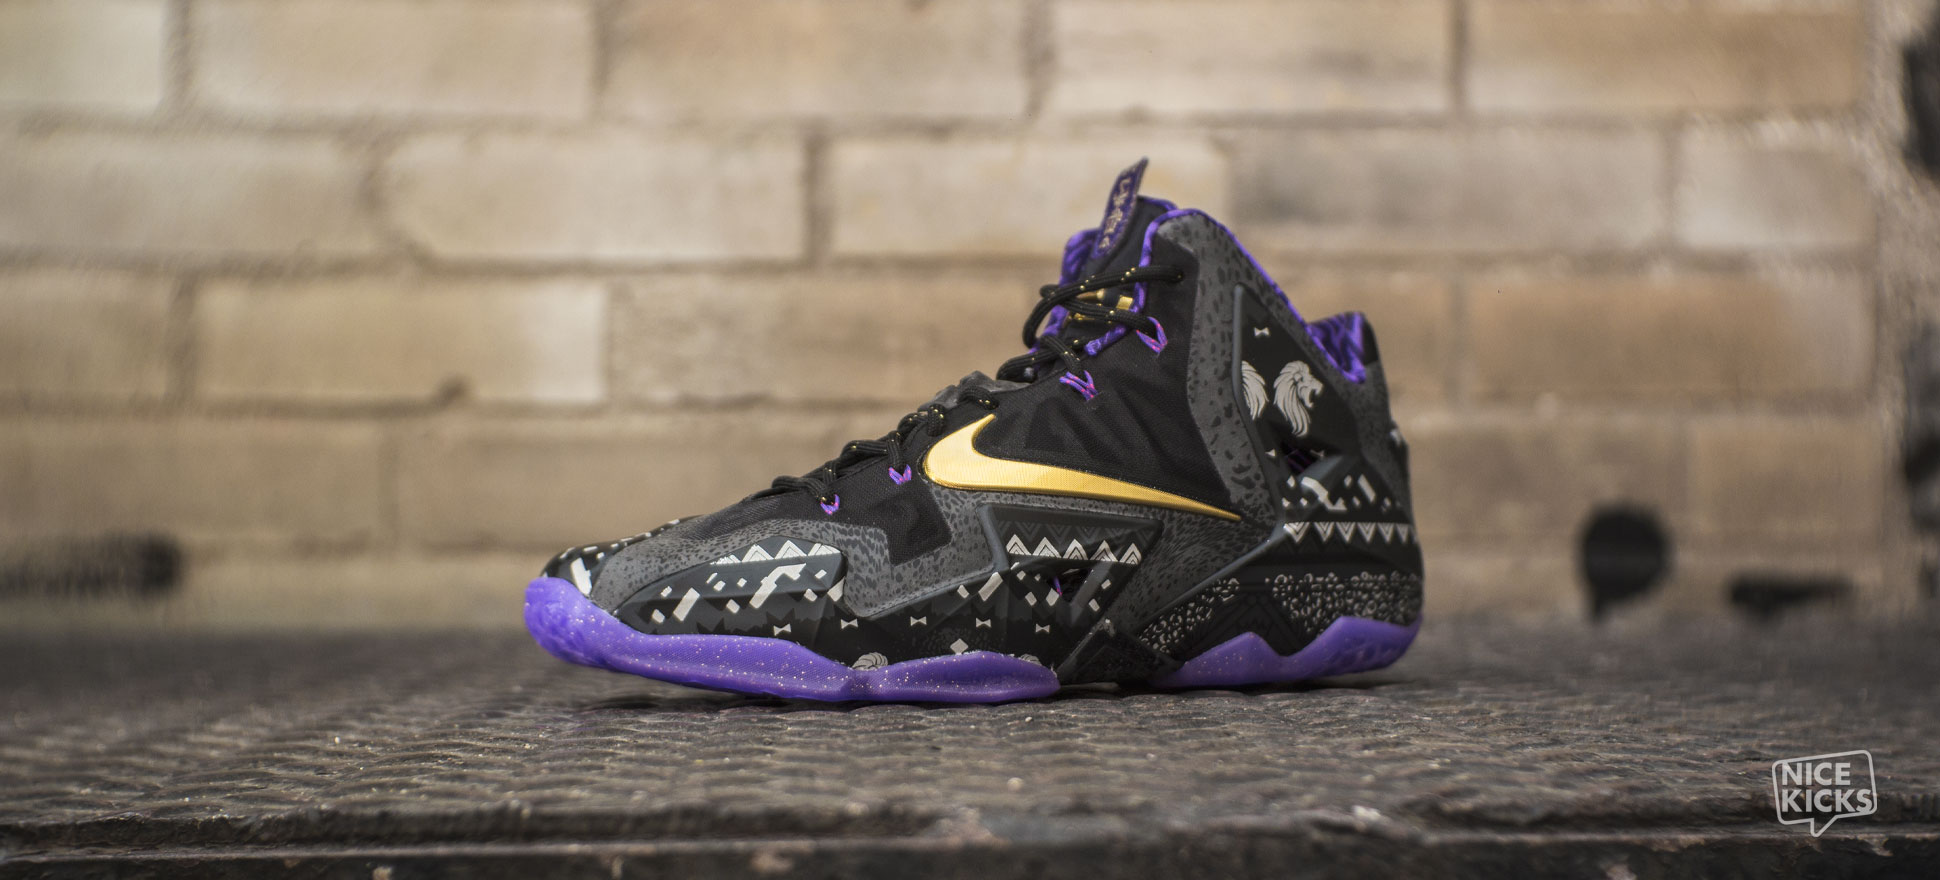 4c3f873214a4 coupon code for nike lebron 11 upcoming 11bhm 75e2b a931c